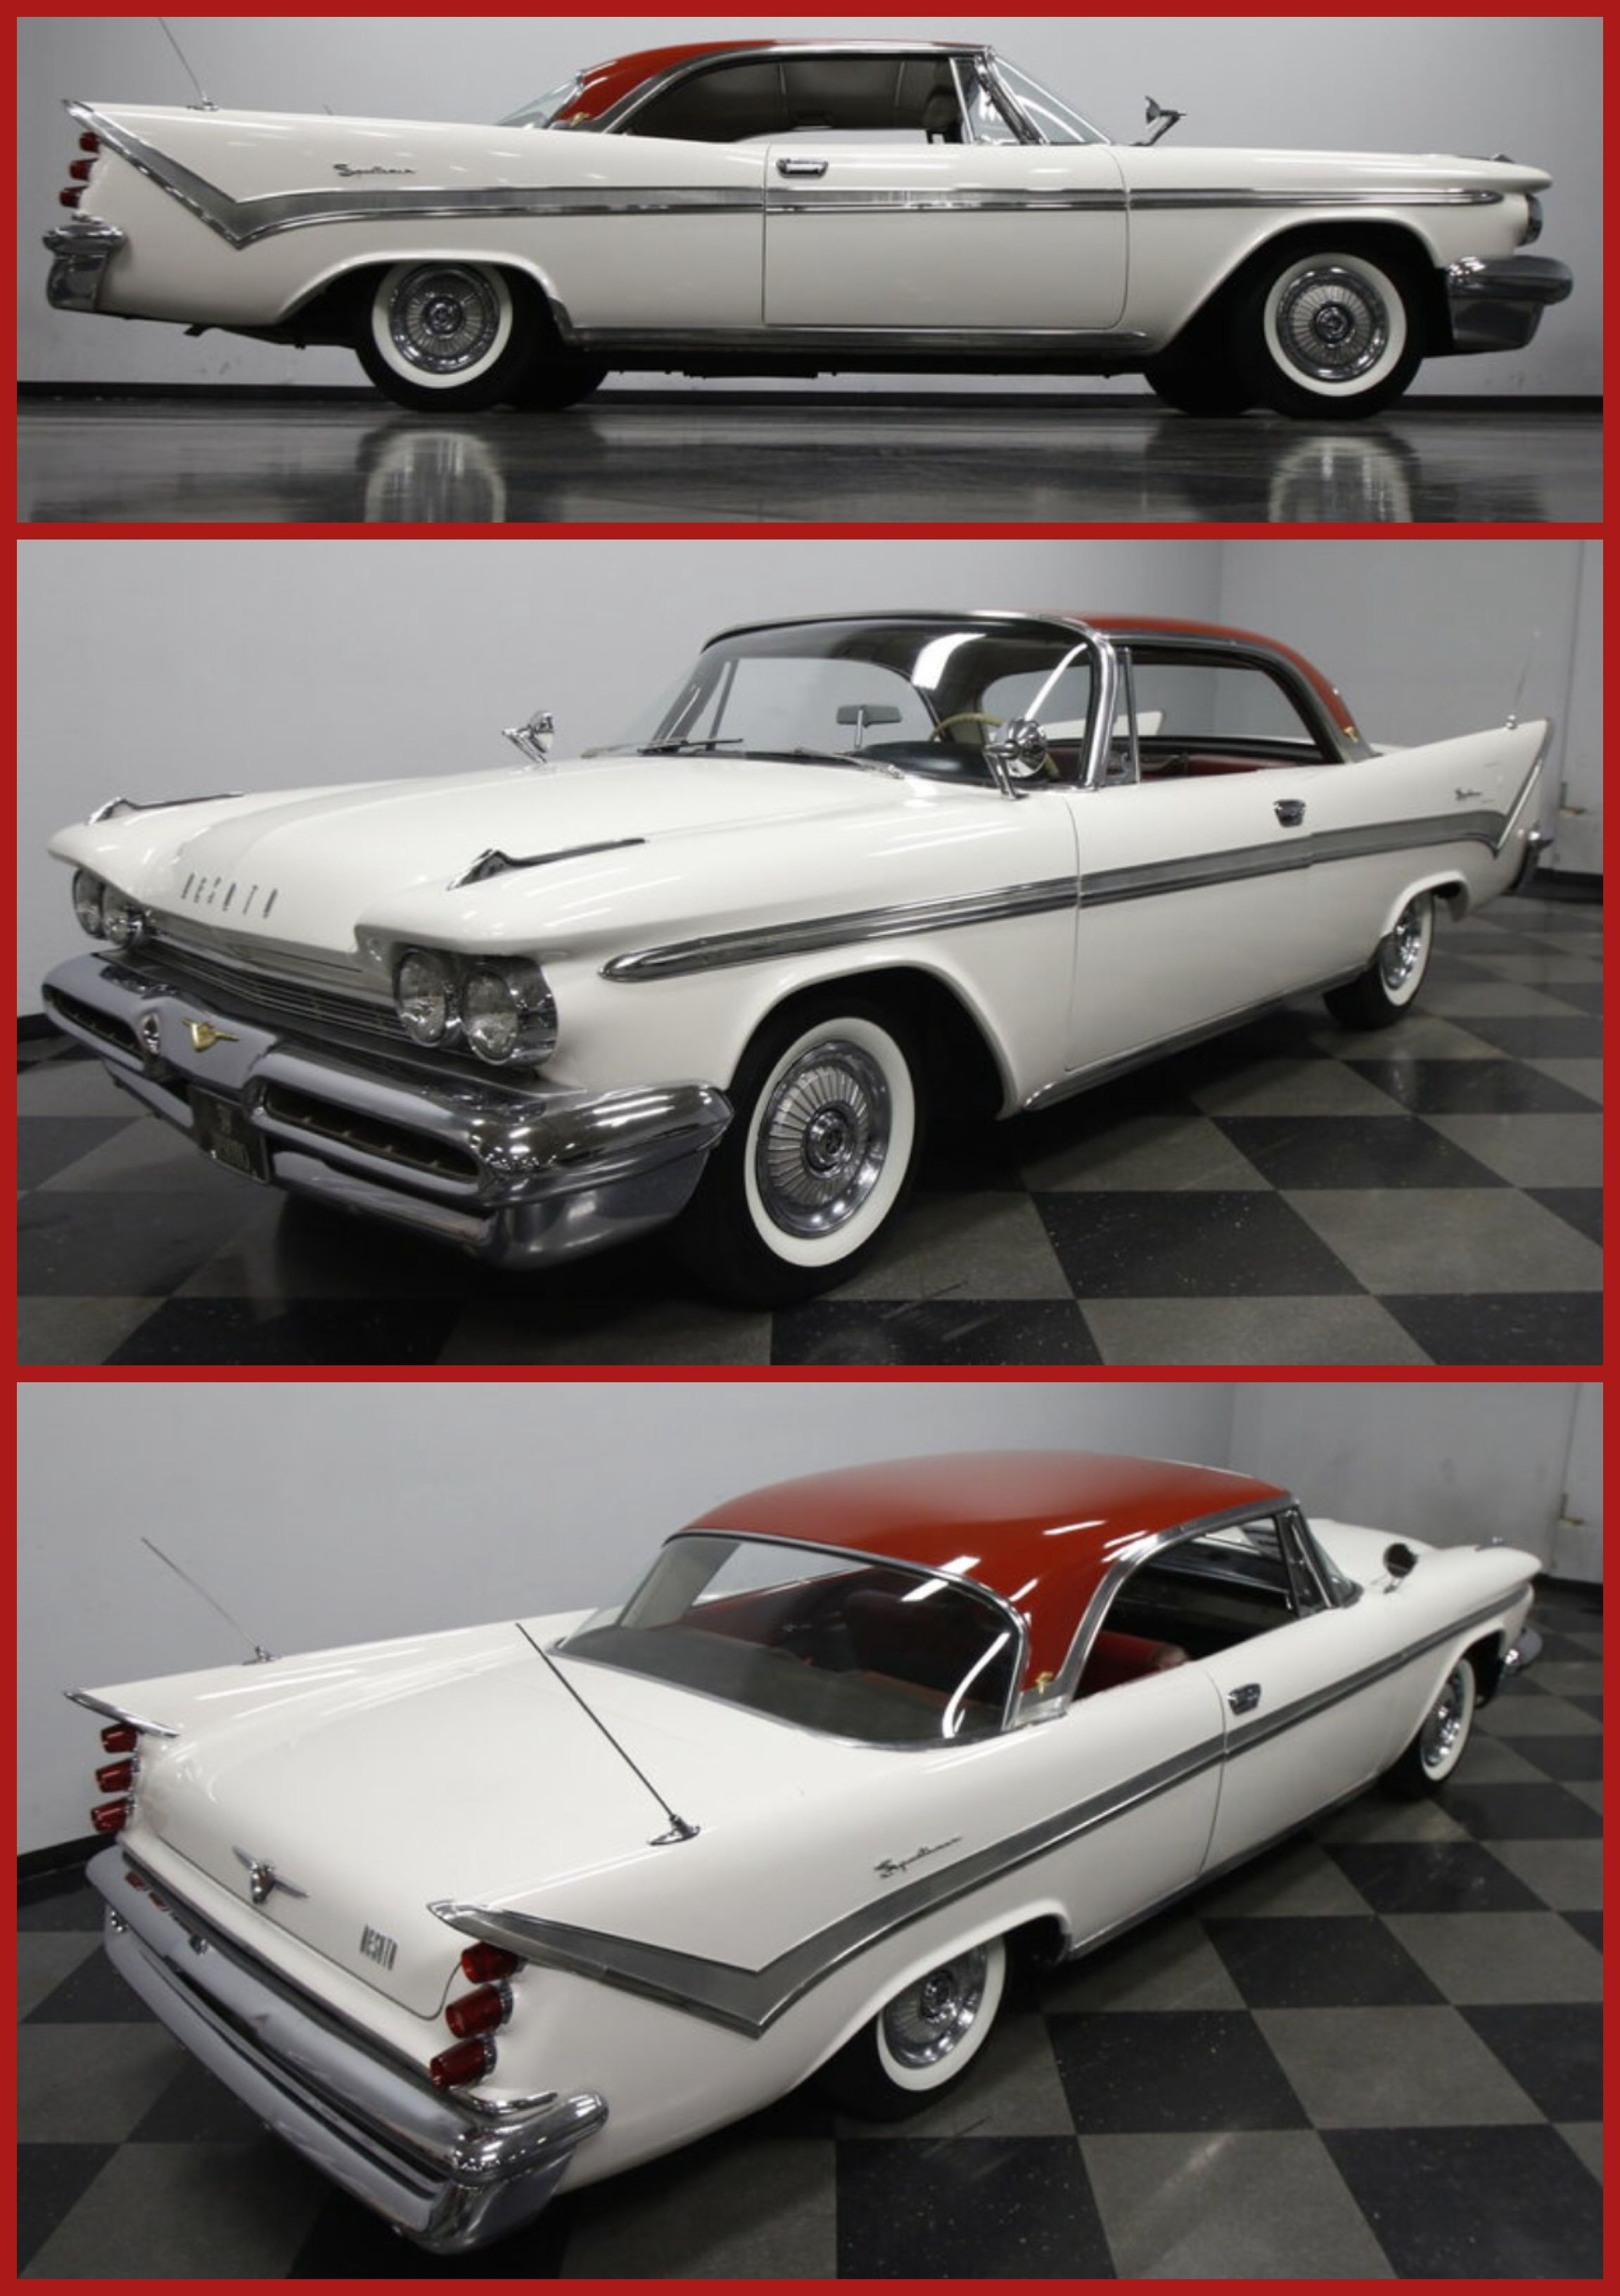 59 Desoto Firesweep Ebay Hot Rods Cars Muscle Classic Cars Muscle Desoto